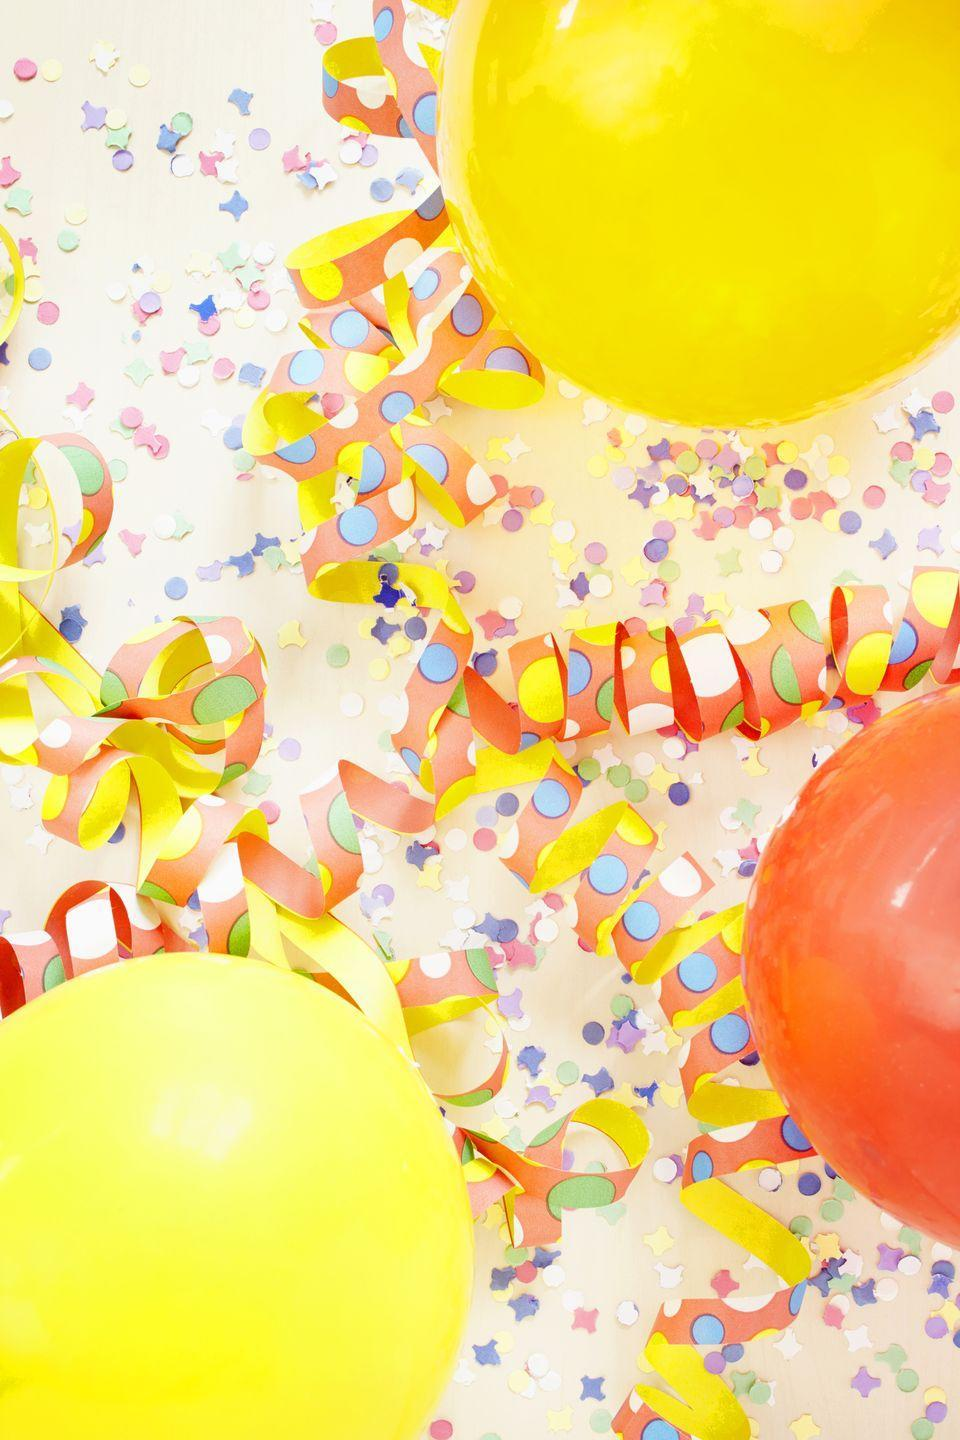 """<p>Grocery stores are known for selling food, not balloons — and there's a reason for that. Though many grocers do offer a range of party supplies, they're often pretty expensive. According to Cheat Sheet, <a href=""""https://www.cheatsheet.com/money-career/things-you-should-never-buy-at-the-grocery-store.html/"""" rel=""""nofollow noopener"""" target=""""_blank"""" data-ylk=""""slk:cheaper varieties can be found at discount party stores or online."""" class=""""link rapid-noclick-resp"""">cheaper varieties can be found at discount party stores or online. </a></p>"""